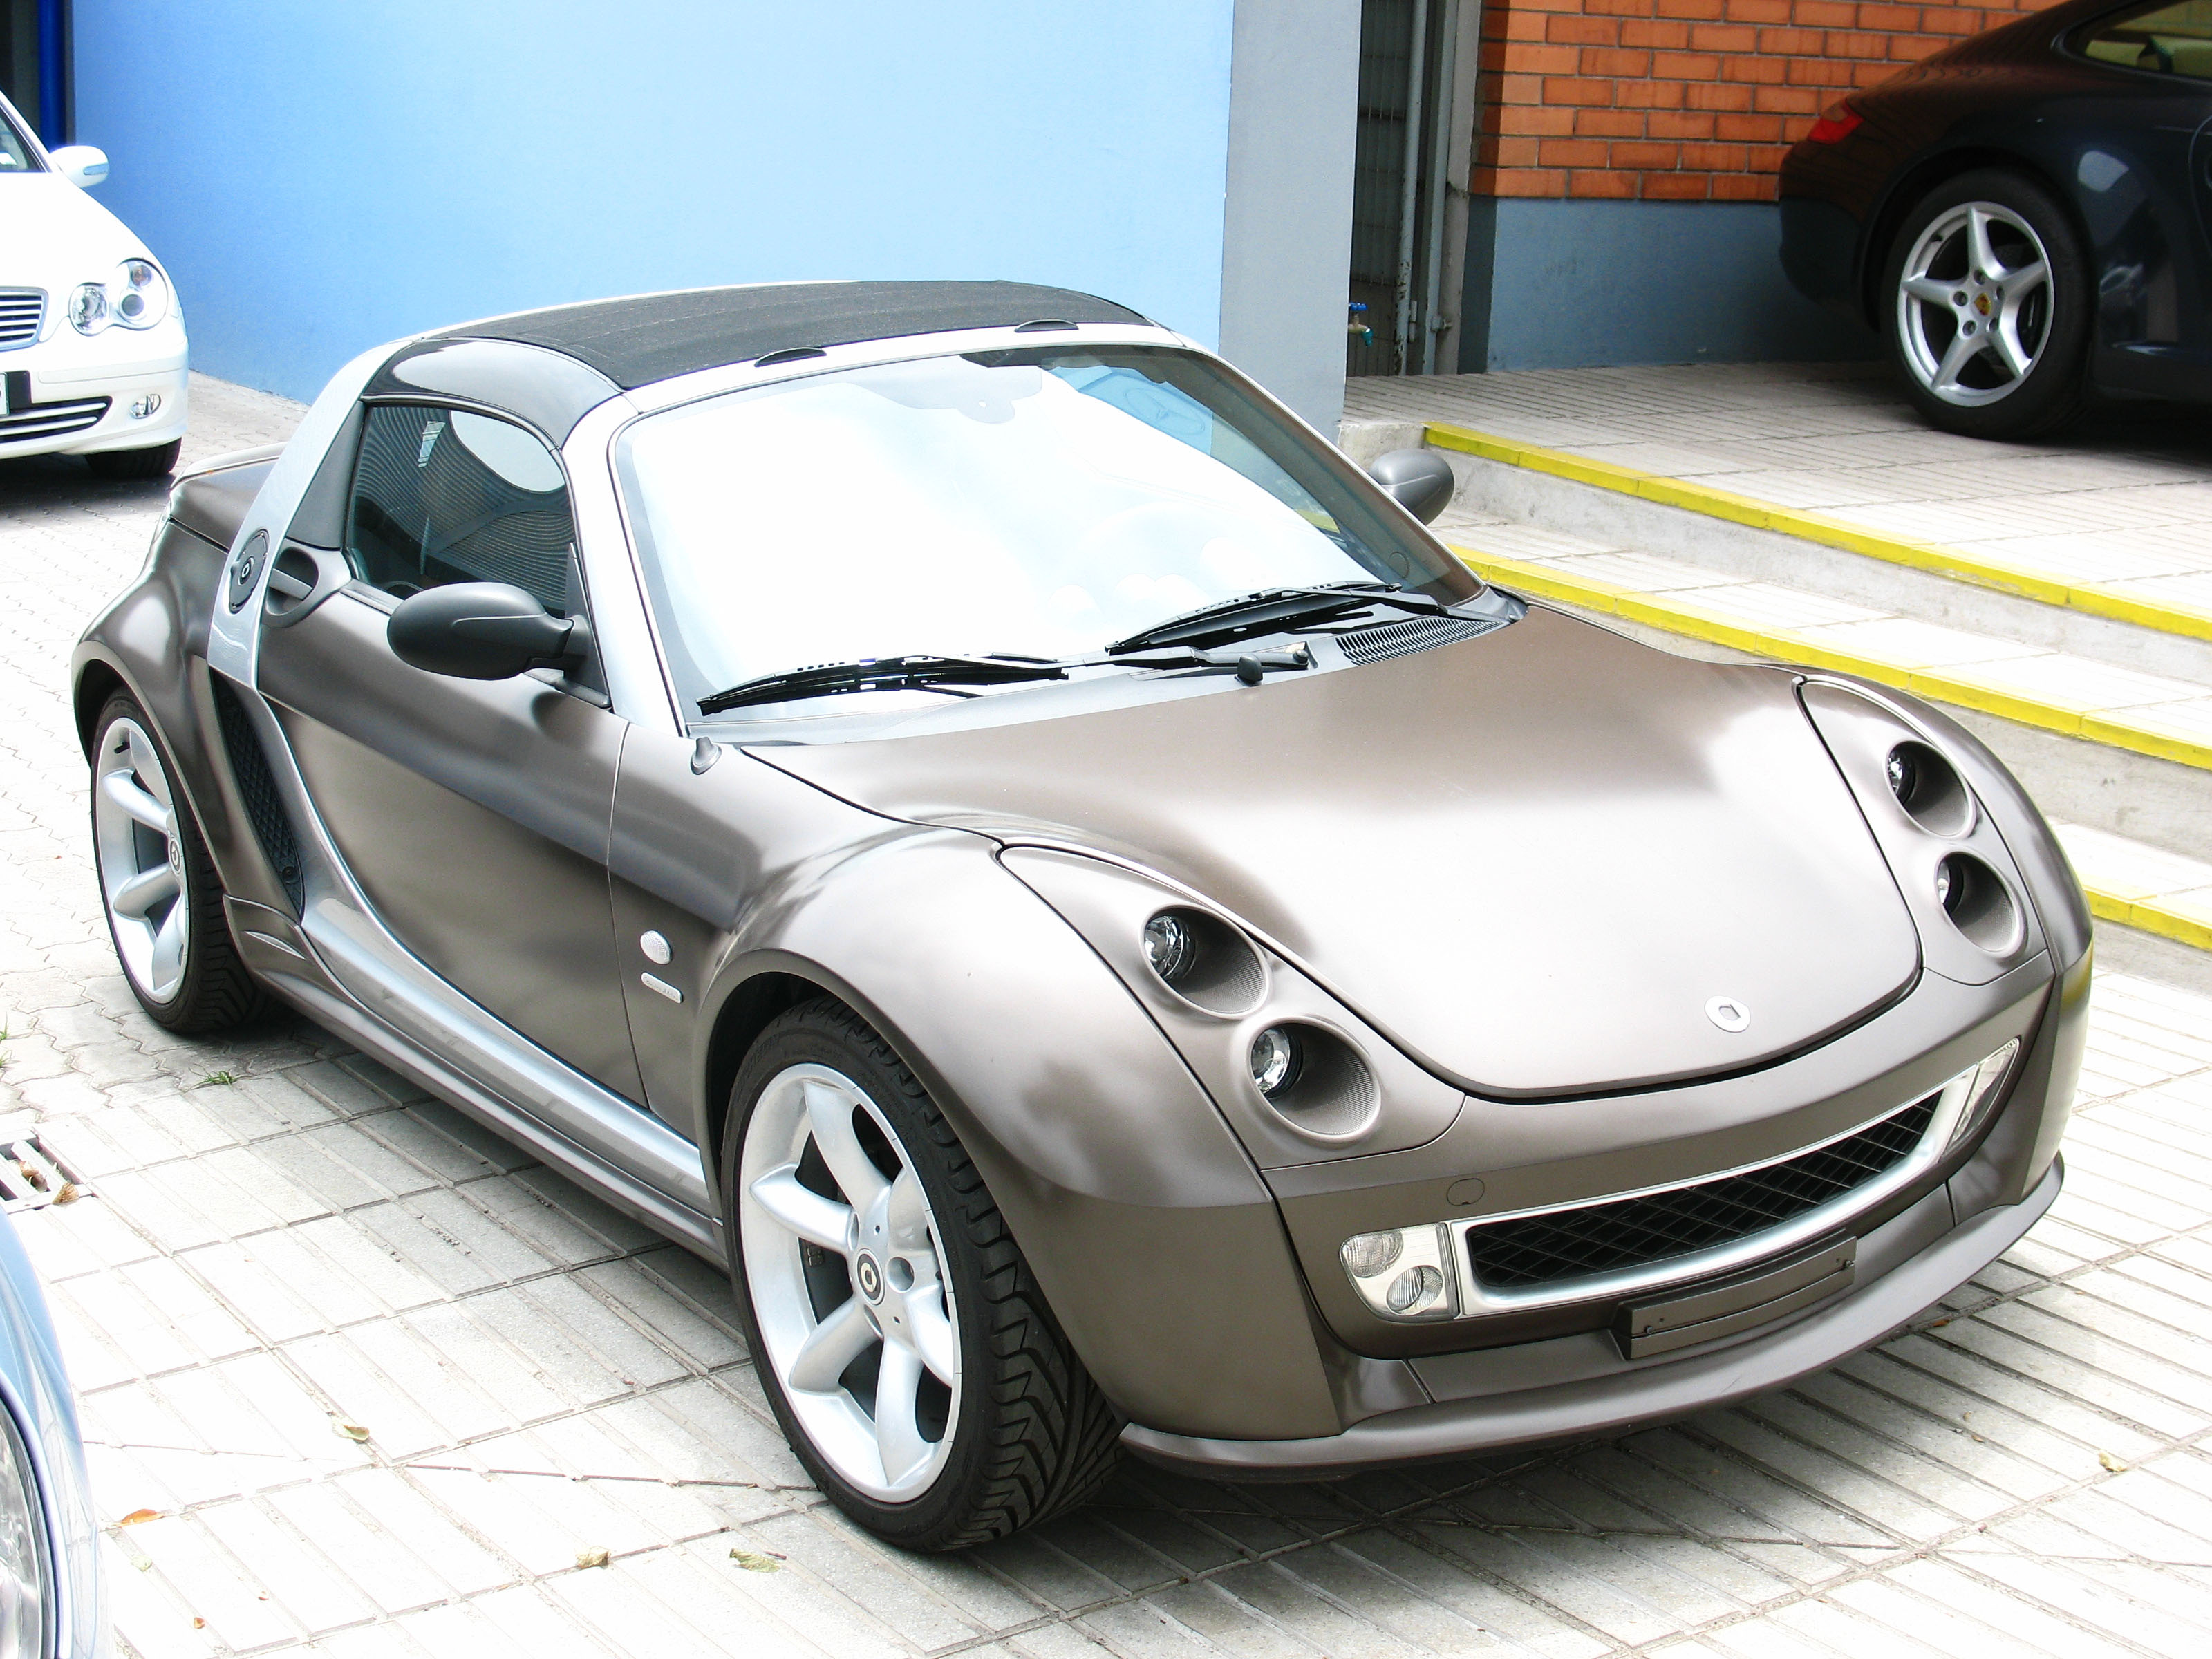 file smart roadster brabus 2006 15177426097 jpg wikimedia commons. Black Bedroom Furniture Sets. Home Design Ideas